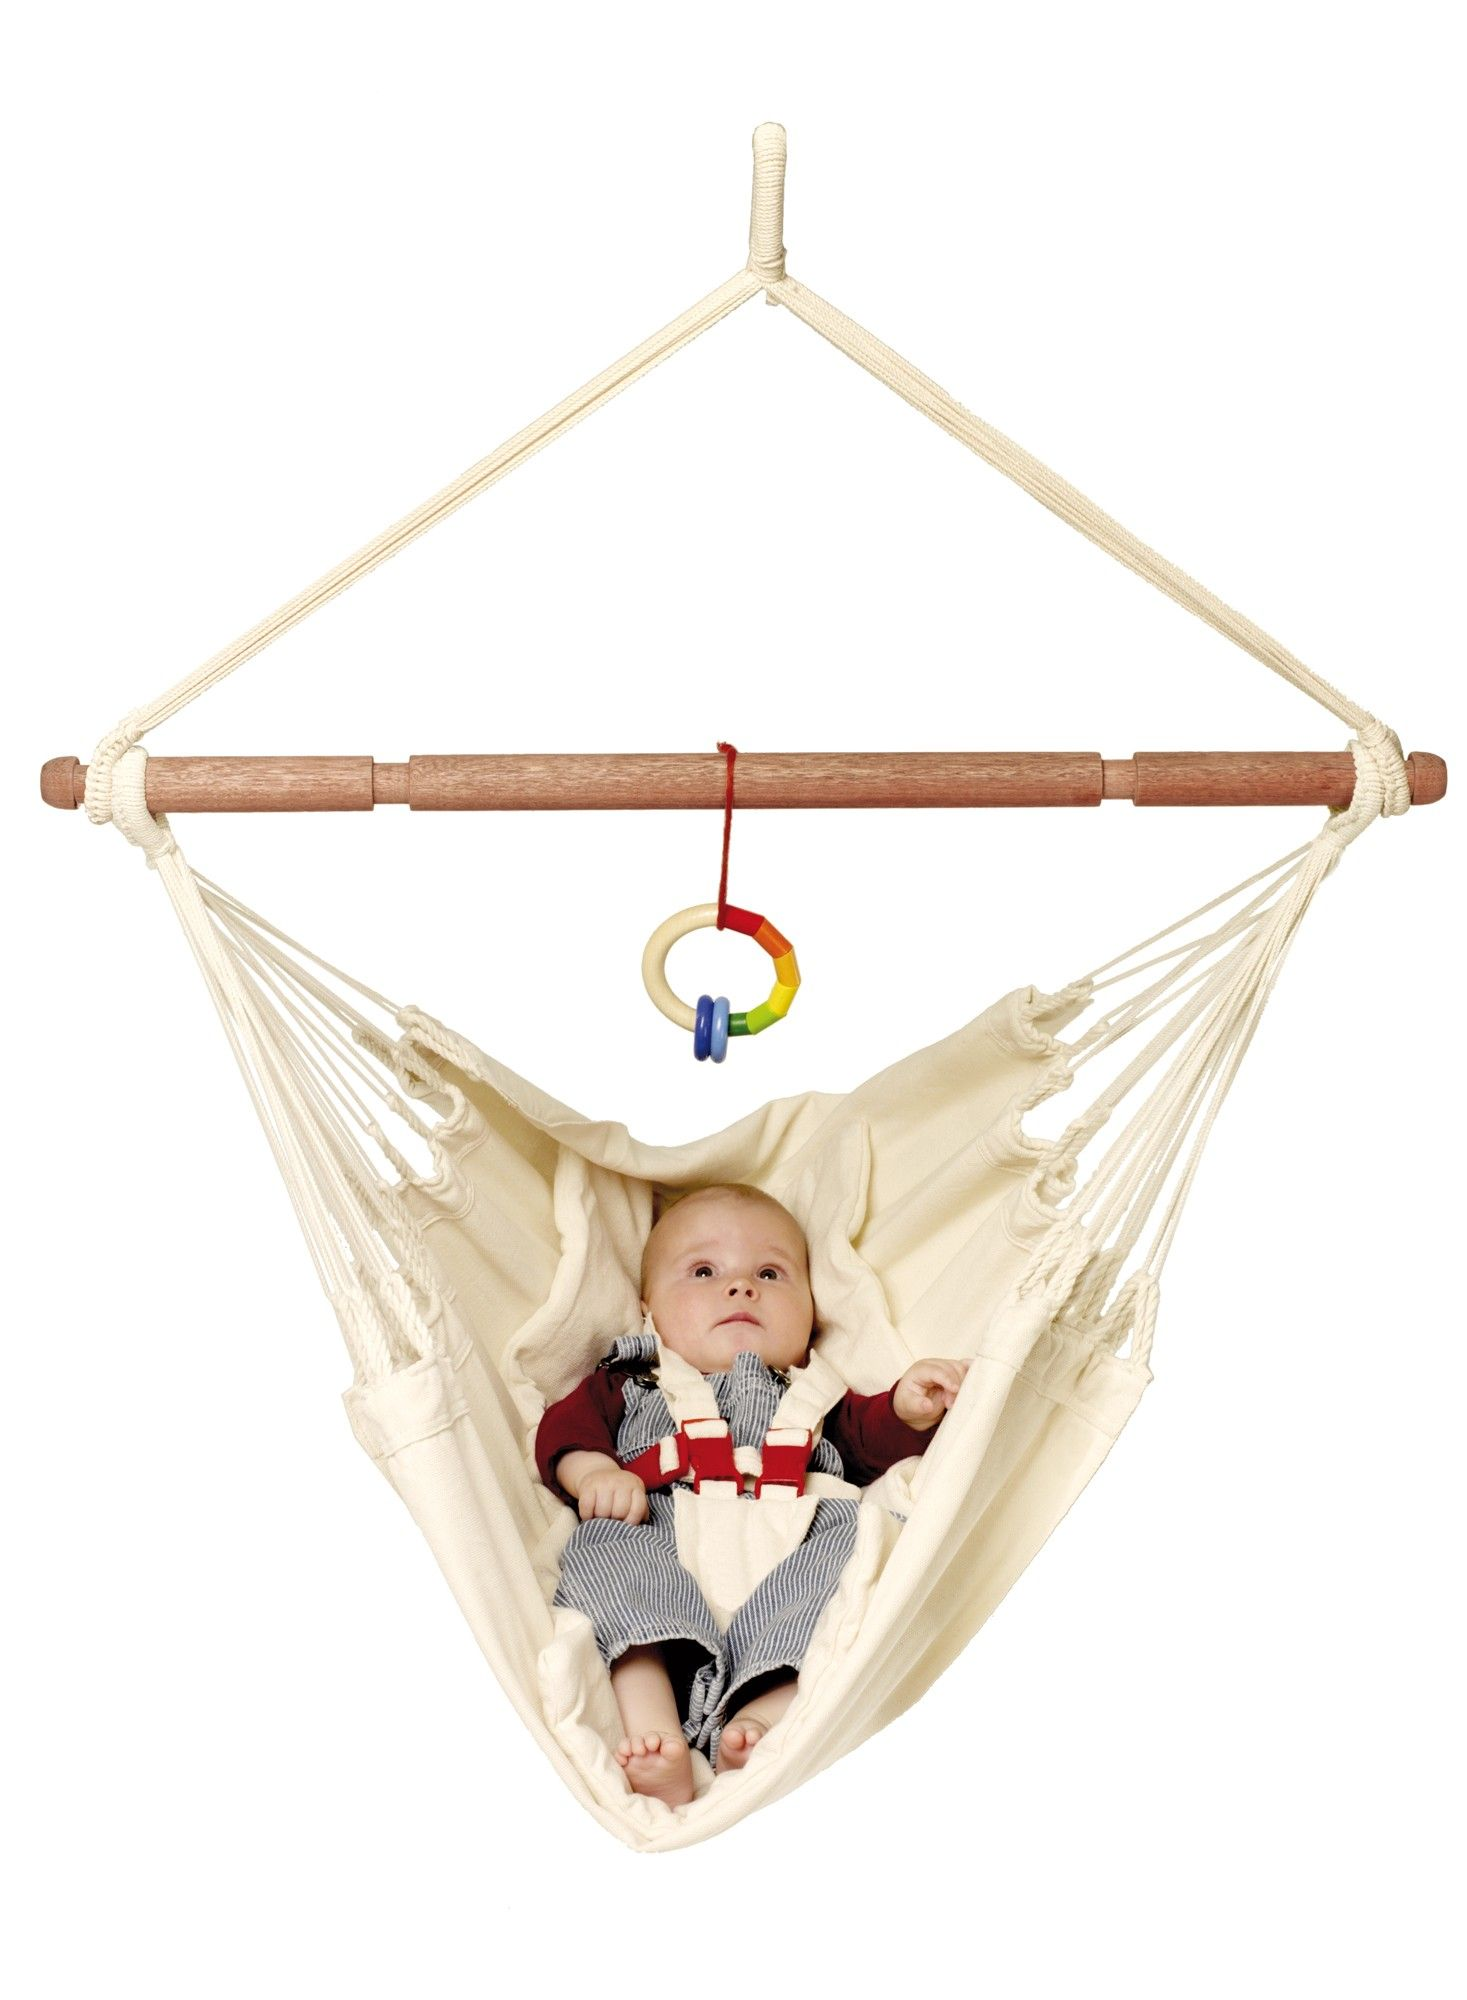 Need to check out this site to buy hammocks on!!!!!